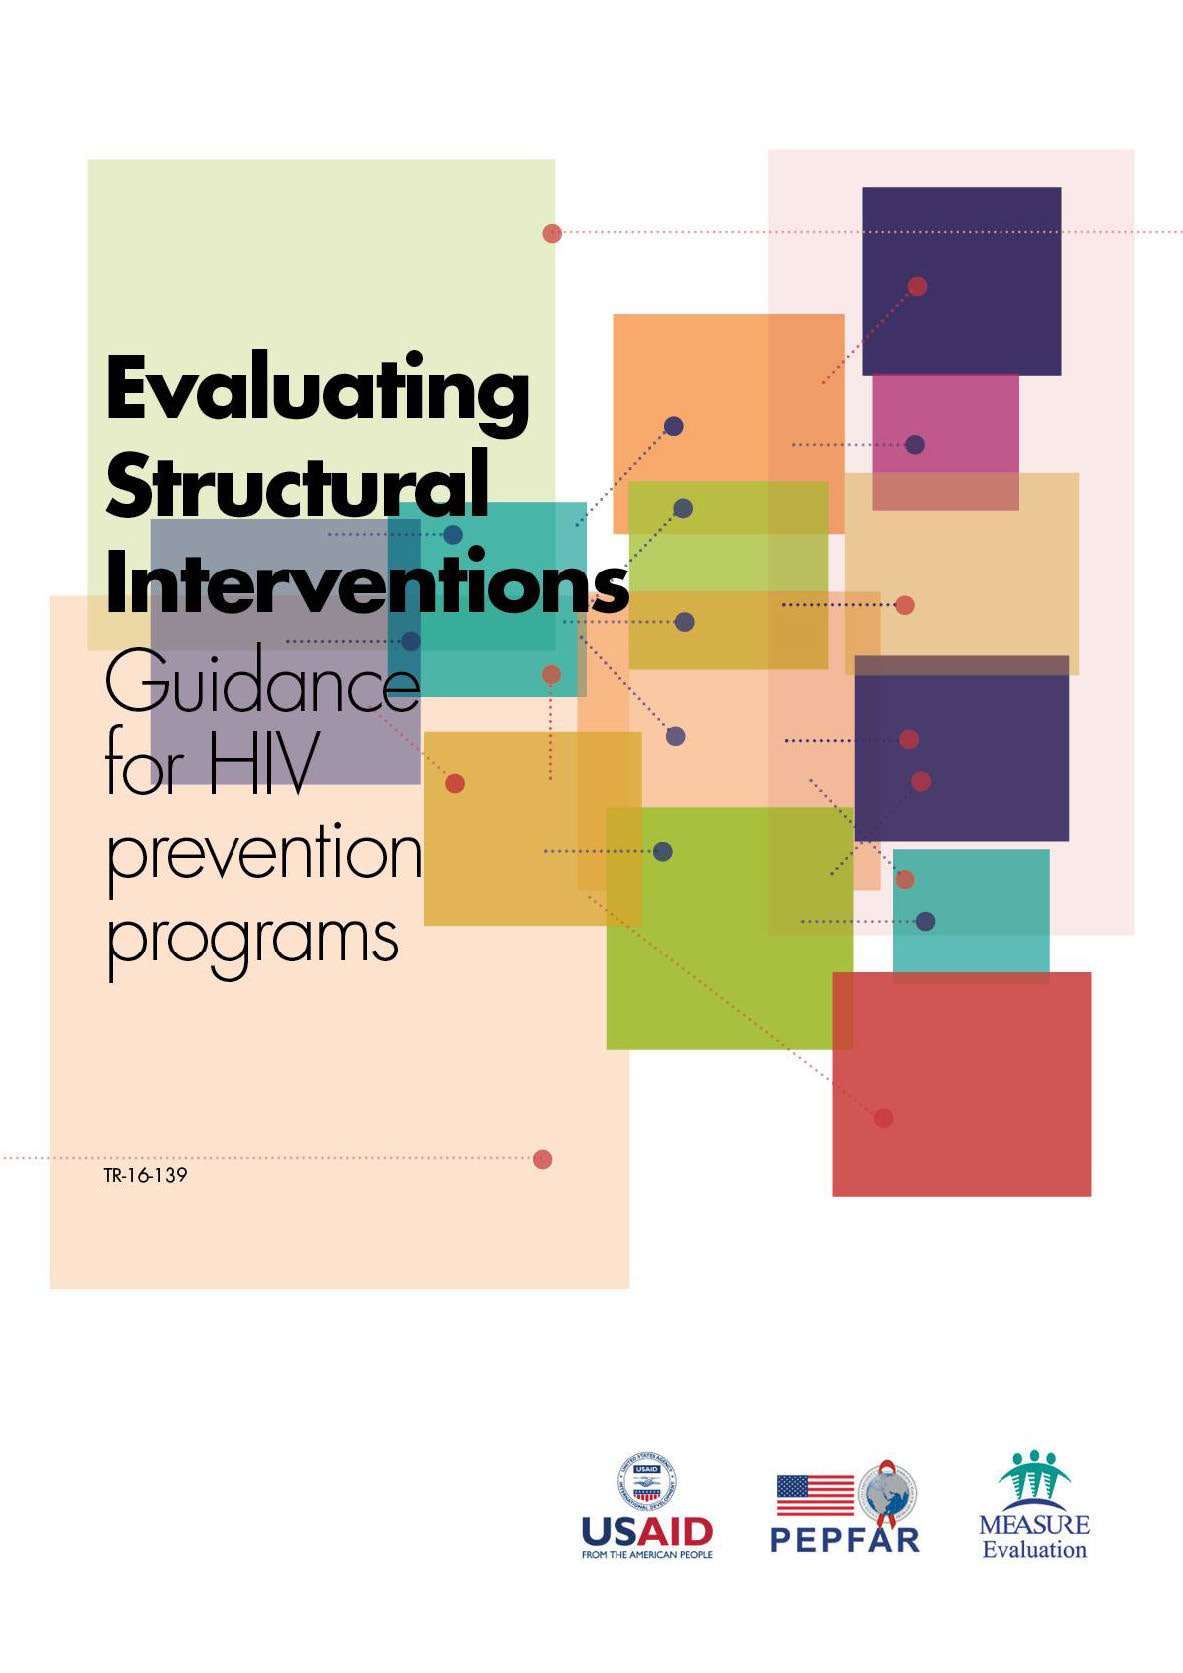 Evaluating Structural Interventions  Guidance for HIV prevention programs